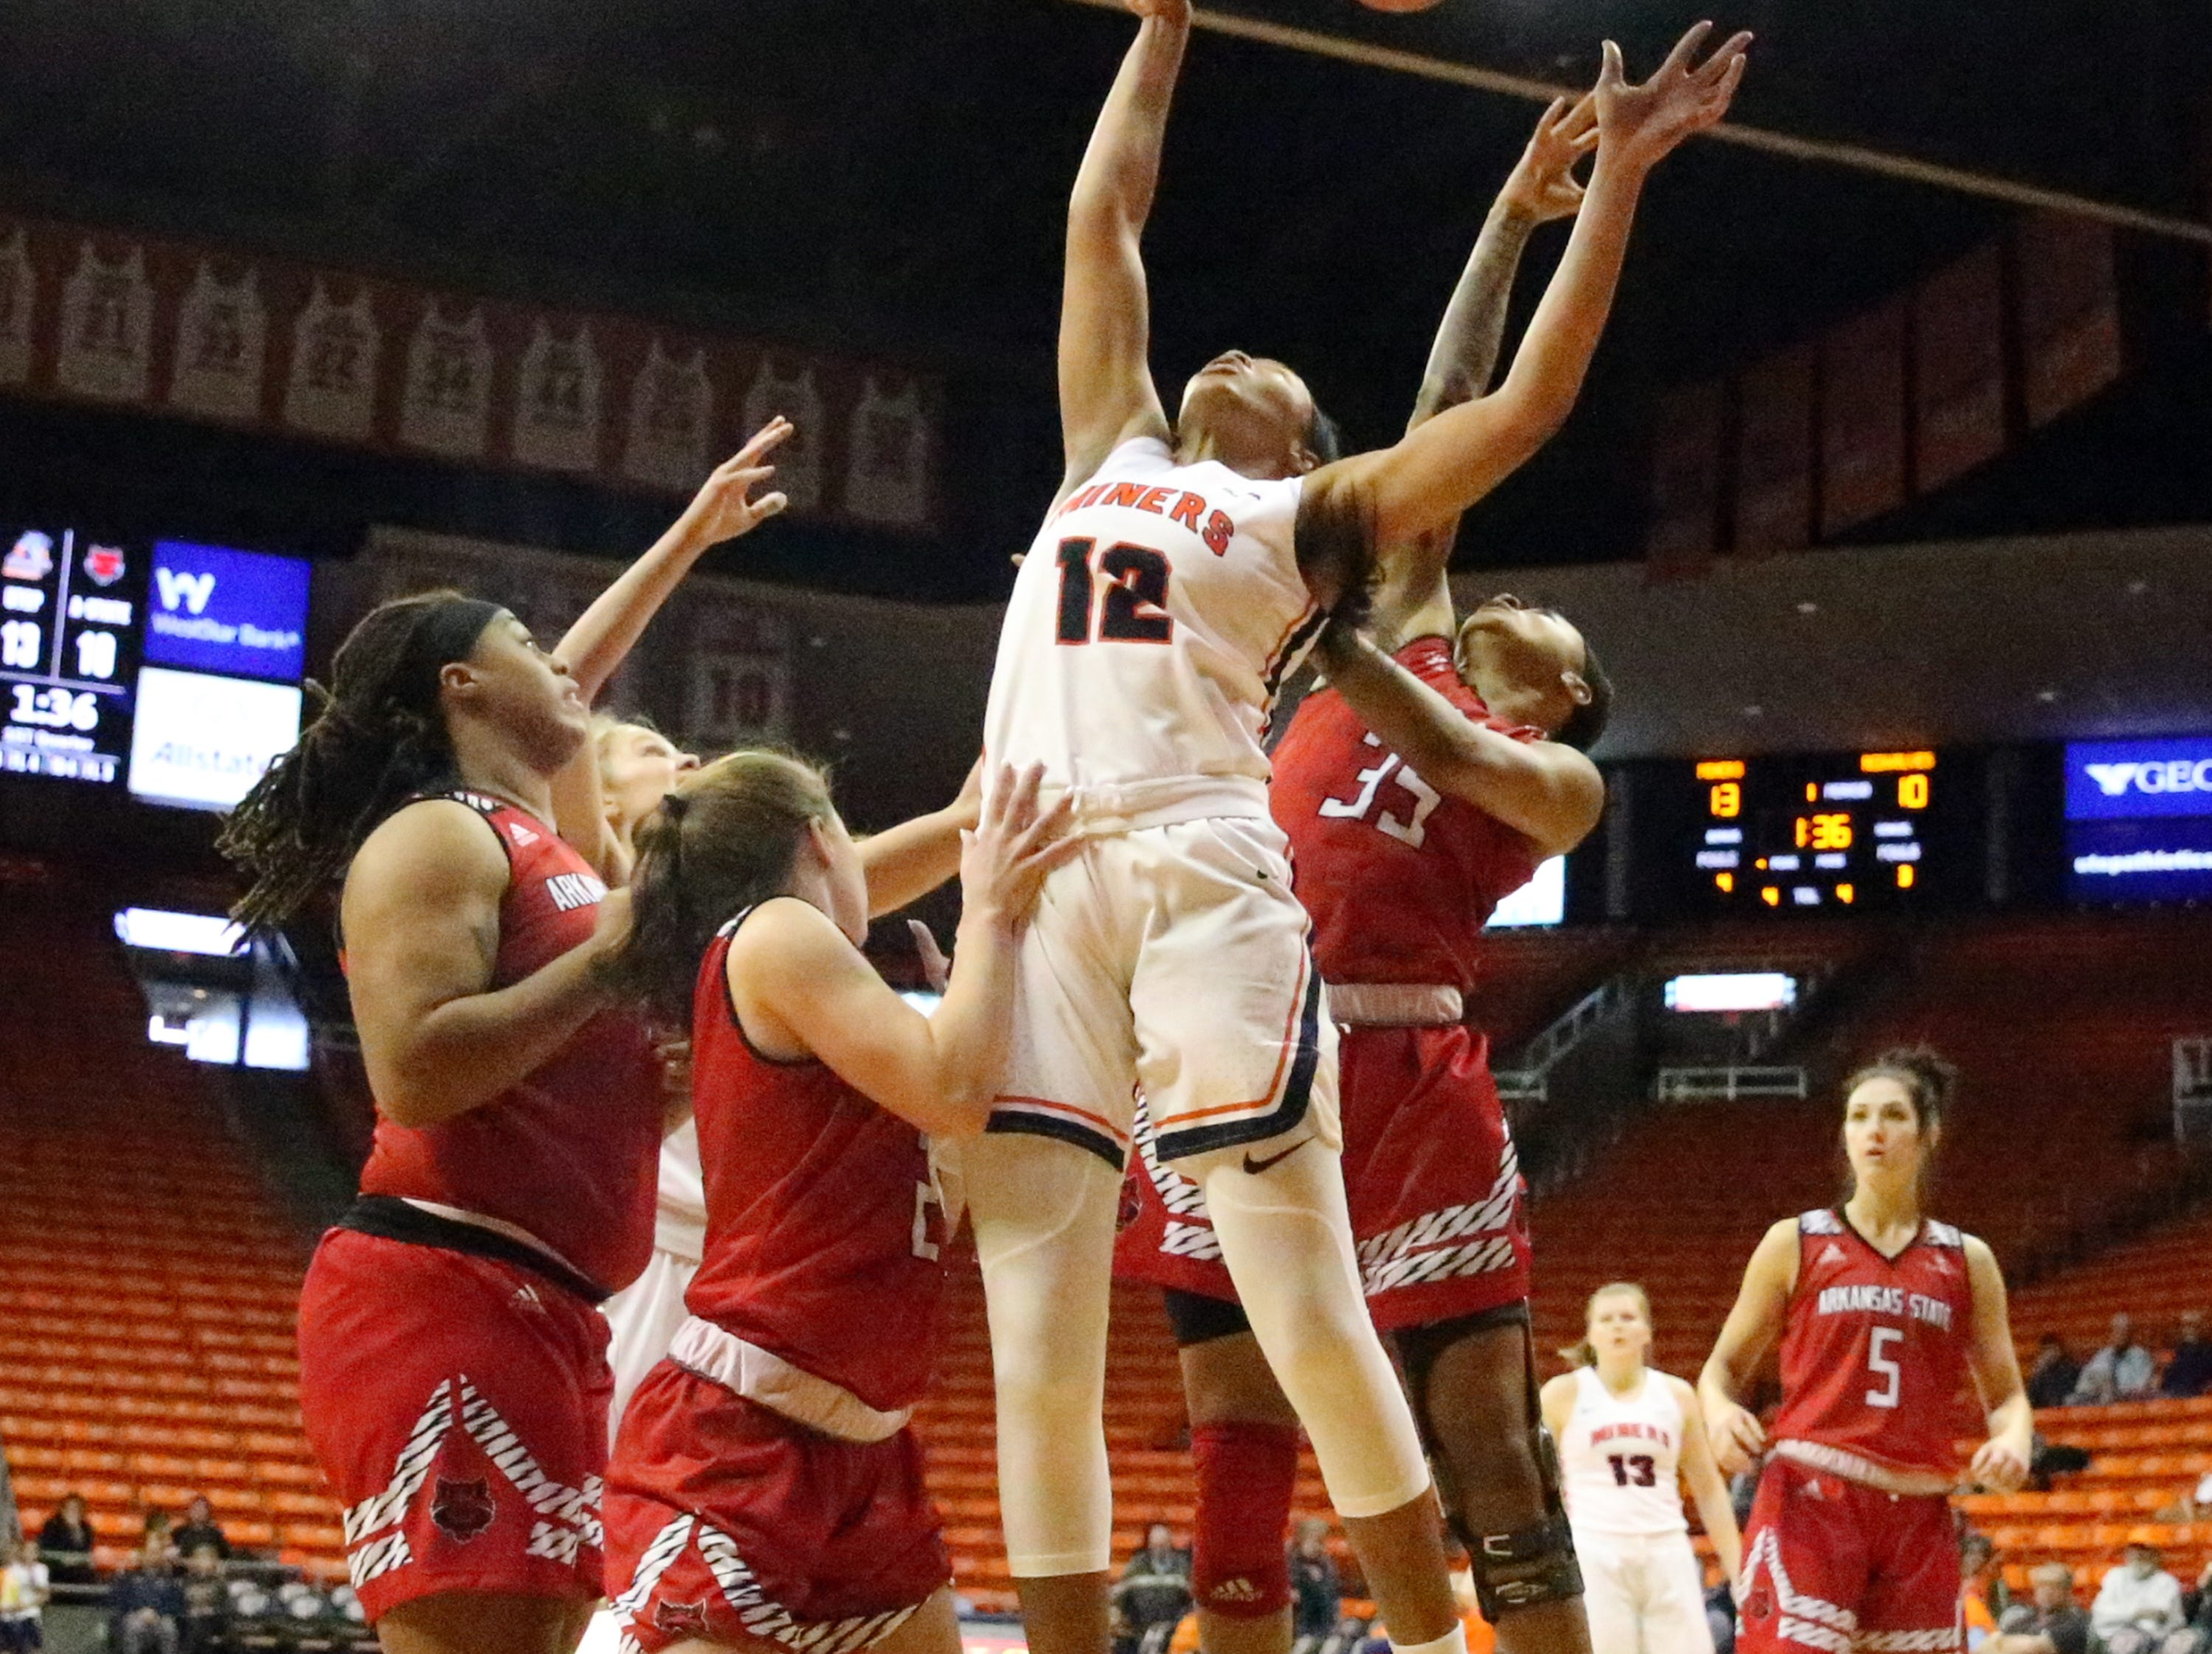 Ariona Gill, 12, of UTEP gets the ball deflected whild driving to the basket against Arkansas State Saturday.